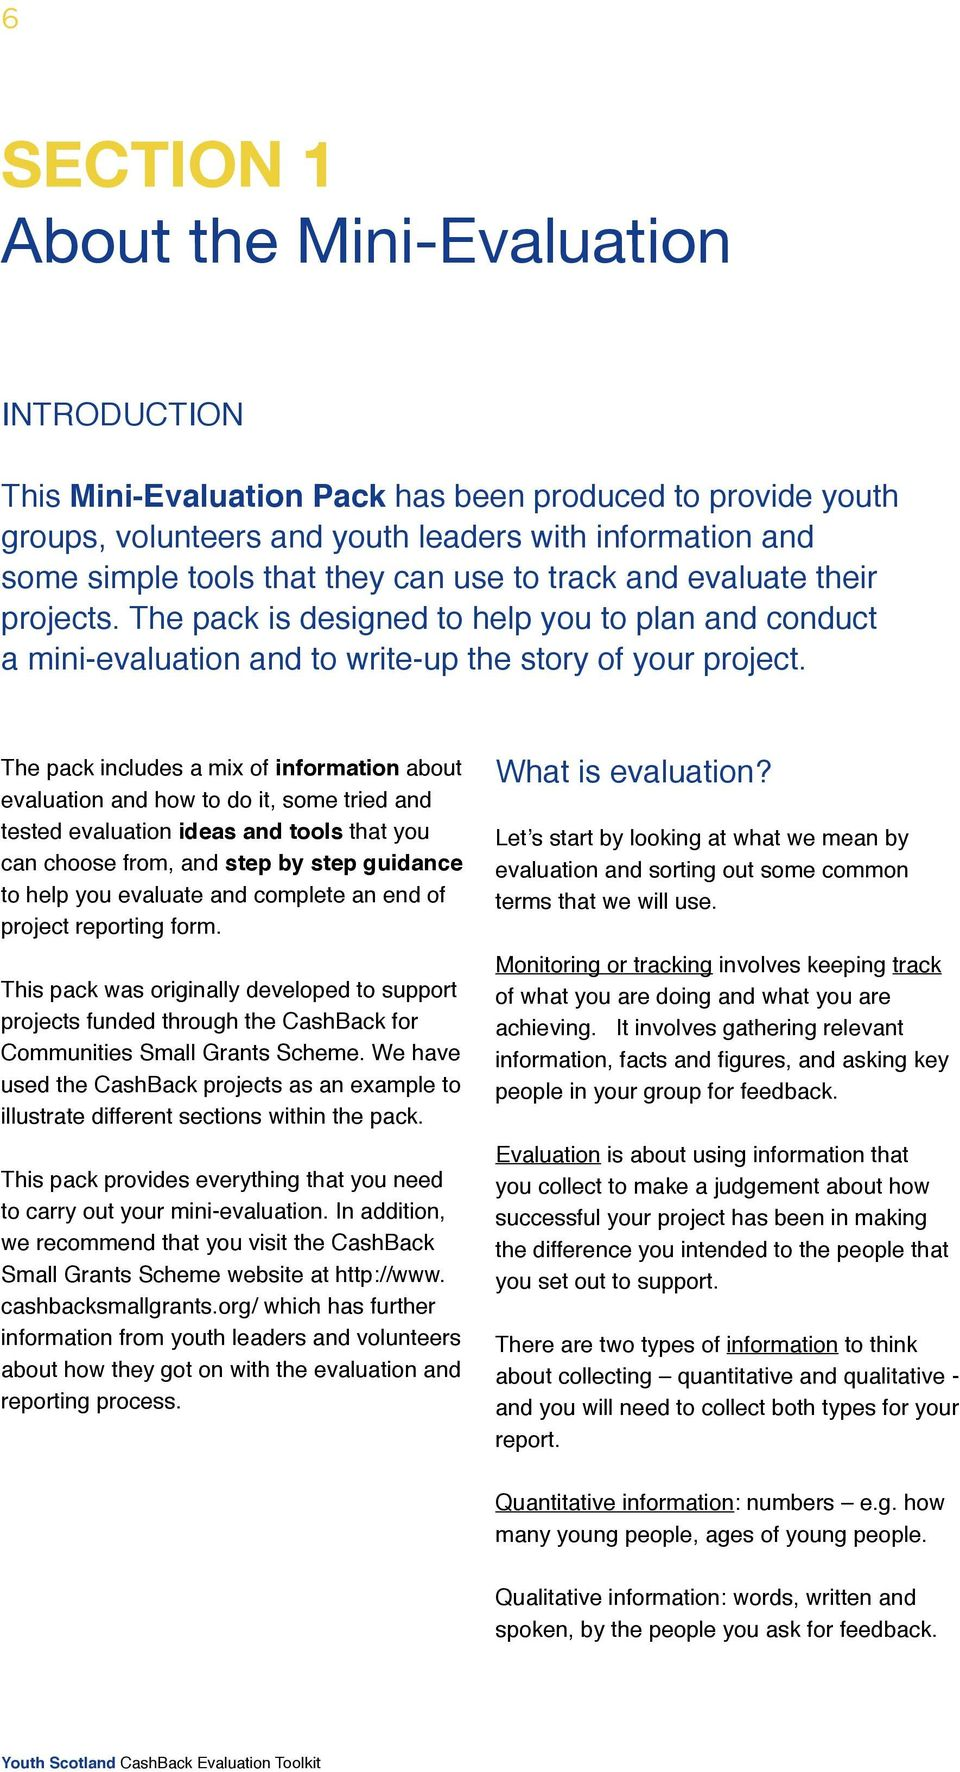 The pack includes a mix of information about evaluation and how to do it, some tried and tested evaluation ideas and tools that you can choose from, and step by step guidance to help you evaluate and